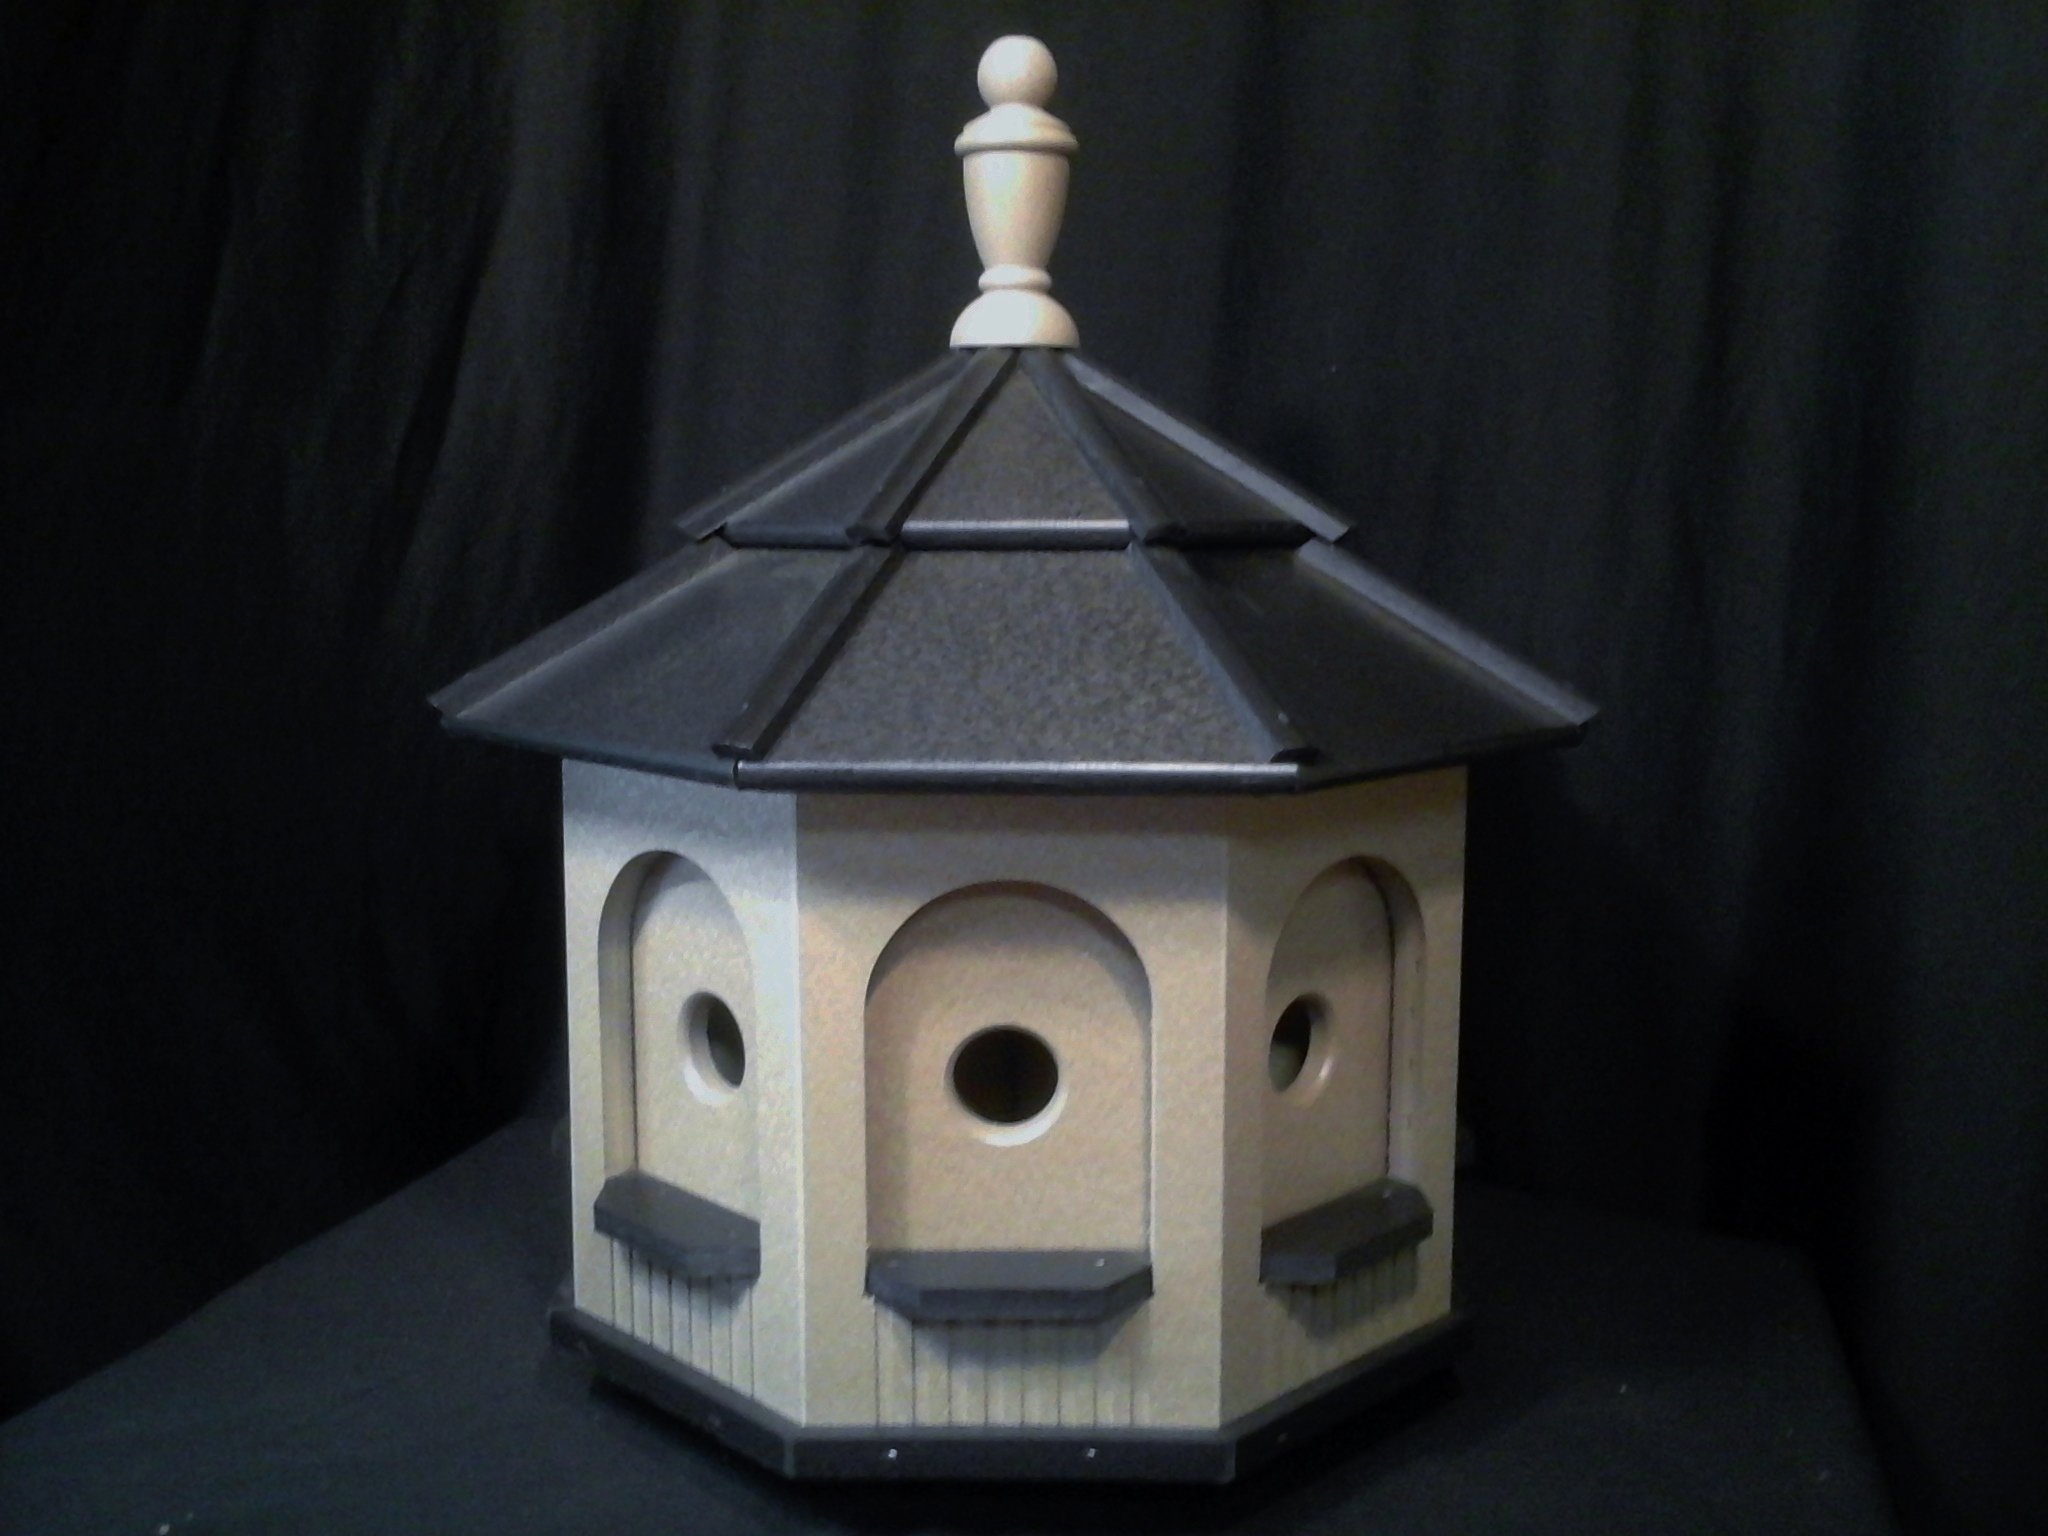 Large Poly Handcrafted Handmade Homemade Birdhouse Garden Clay & Black Roof